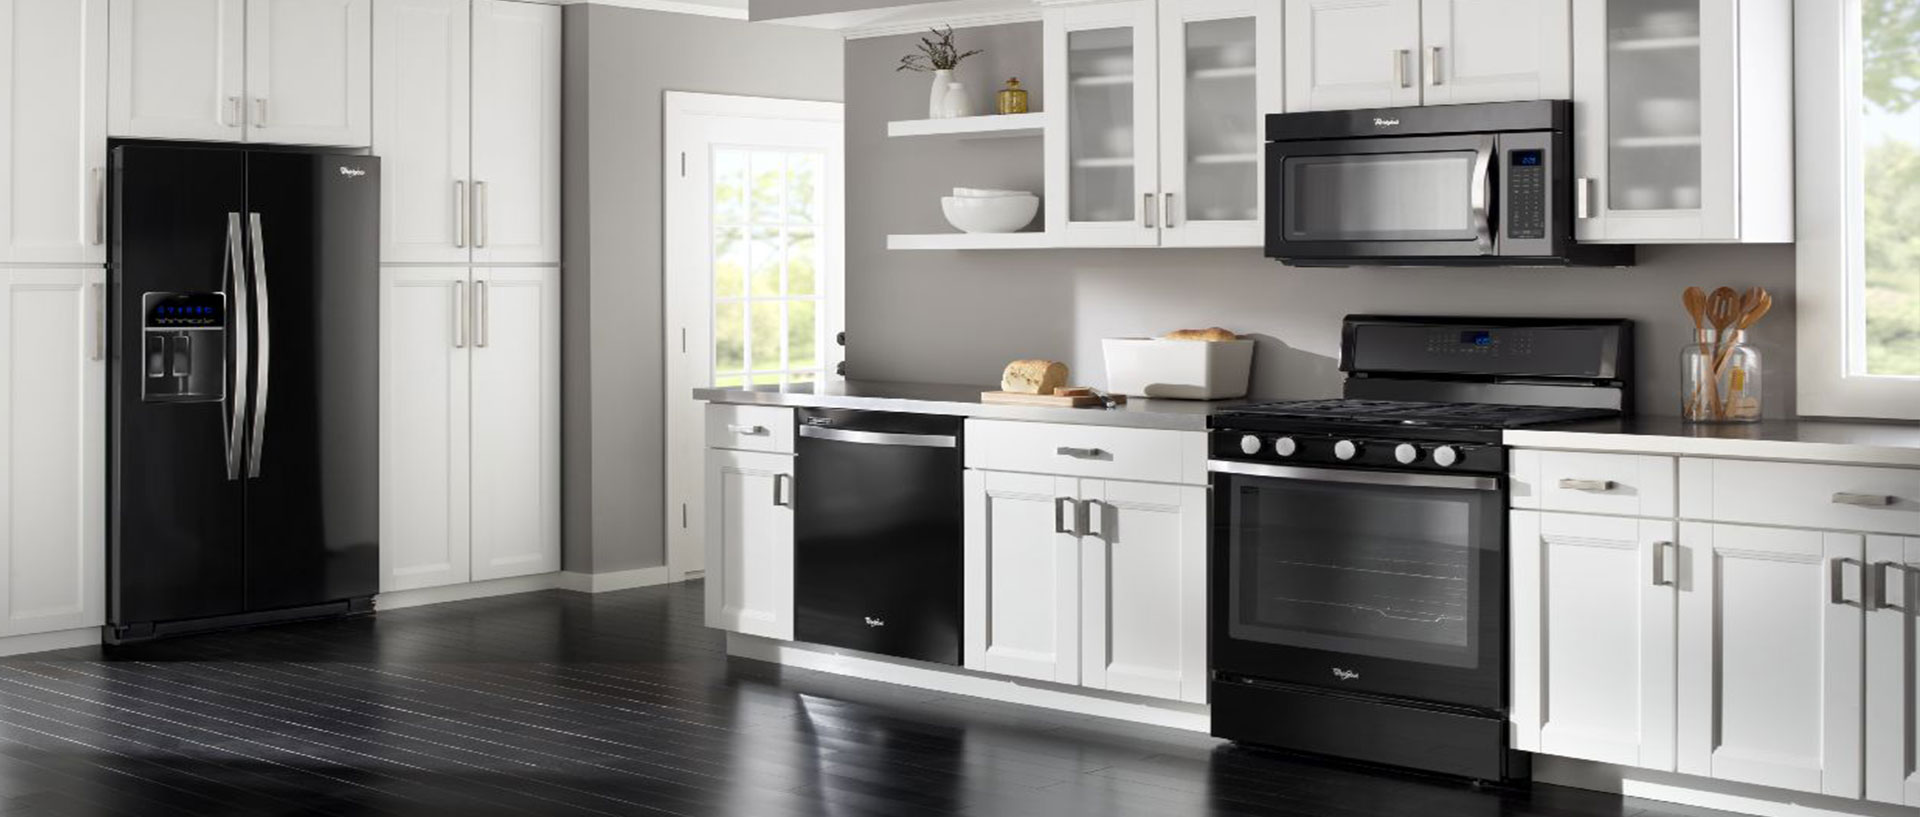 100 New Appliance Colors Press Releases Kitchenaid